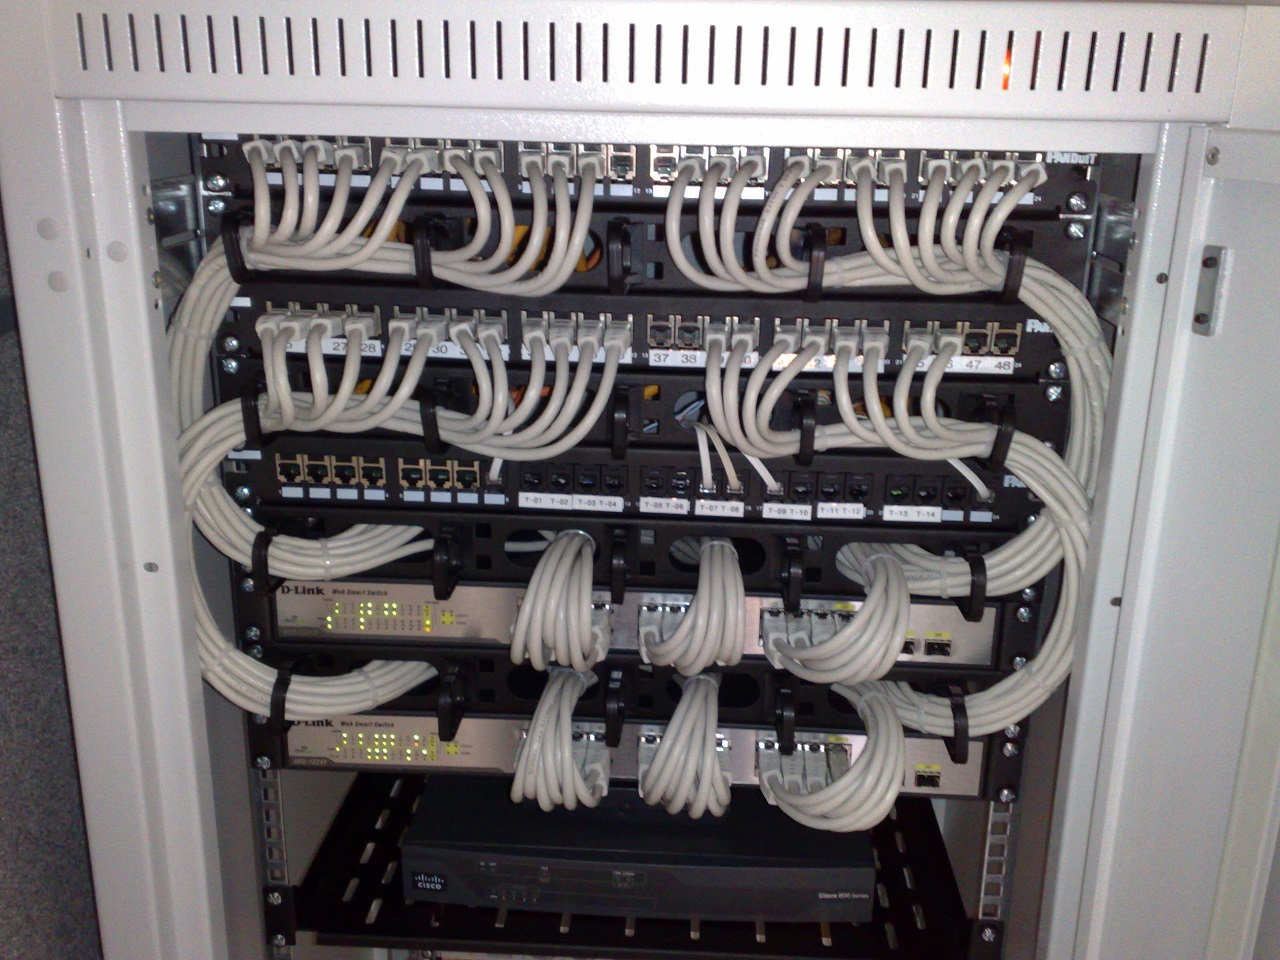 Patch Cable Wikipedia Telephone Panel Wiring Harness Diagram A Couple Of Managed Gigabit Ethernet Rackmount Switches Connected To The Ports On Few Panels Using Category 6 Cables All Equipment